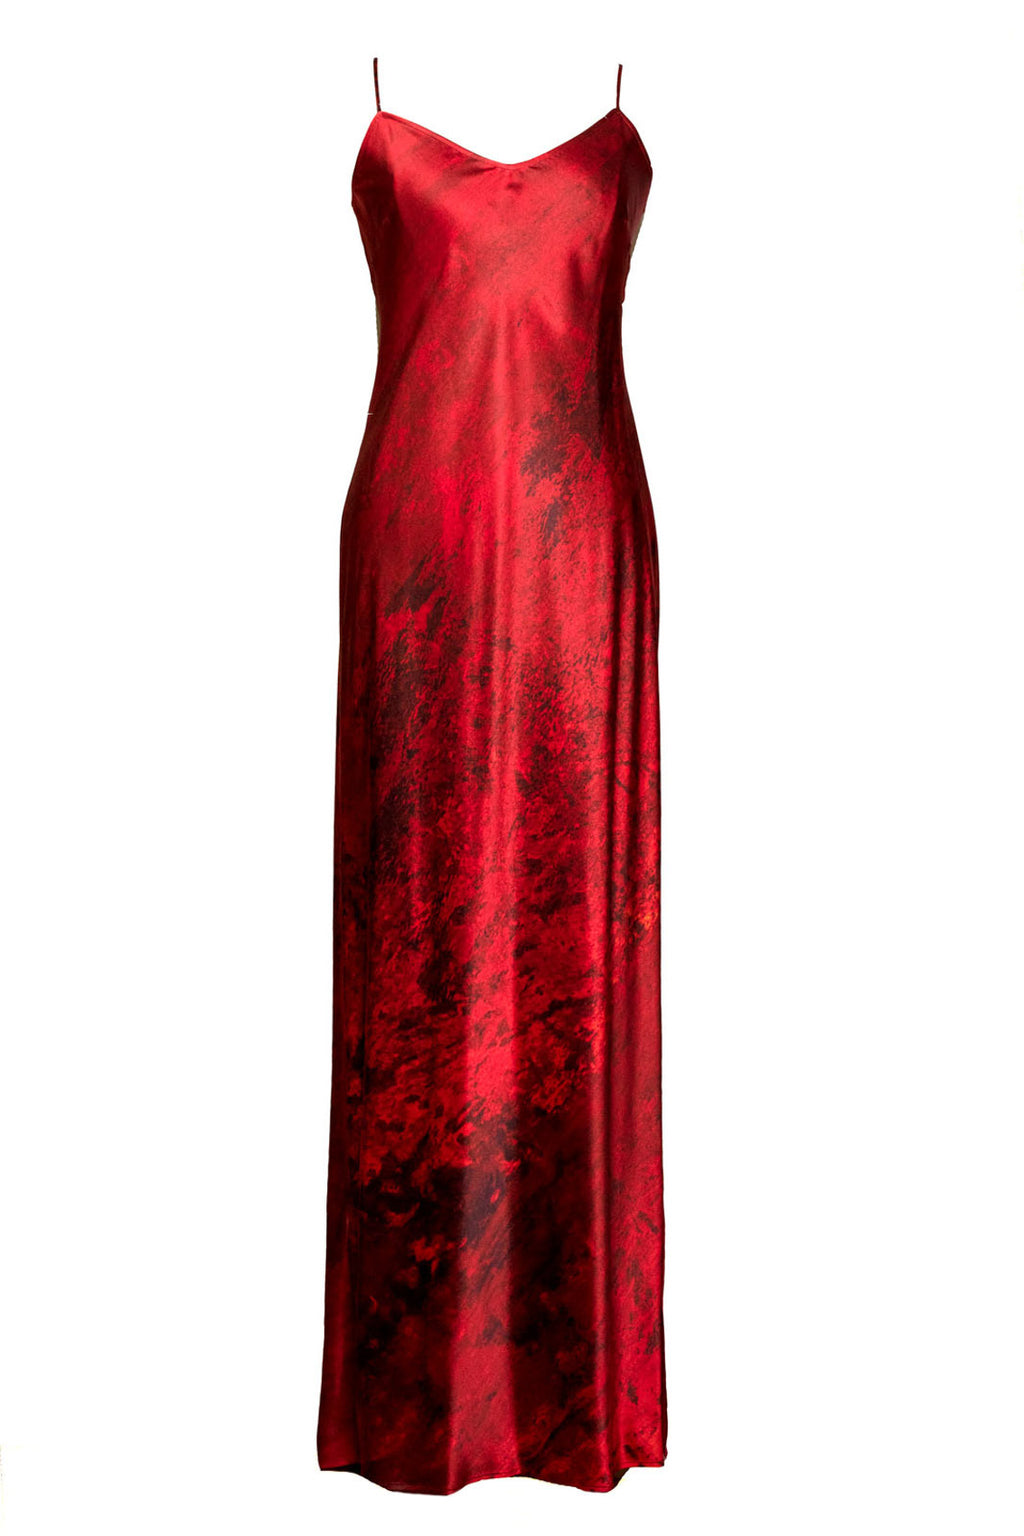 The Nuit Rouge Silk Slip Dress